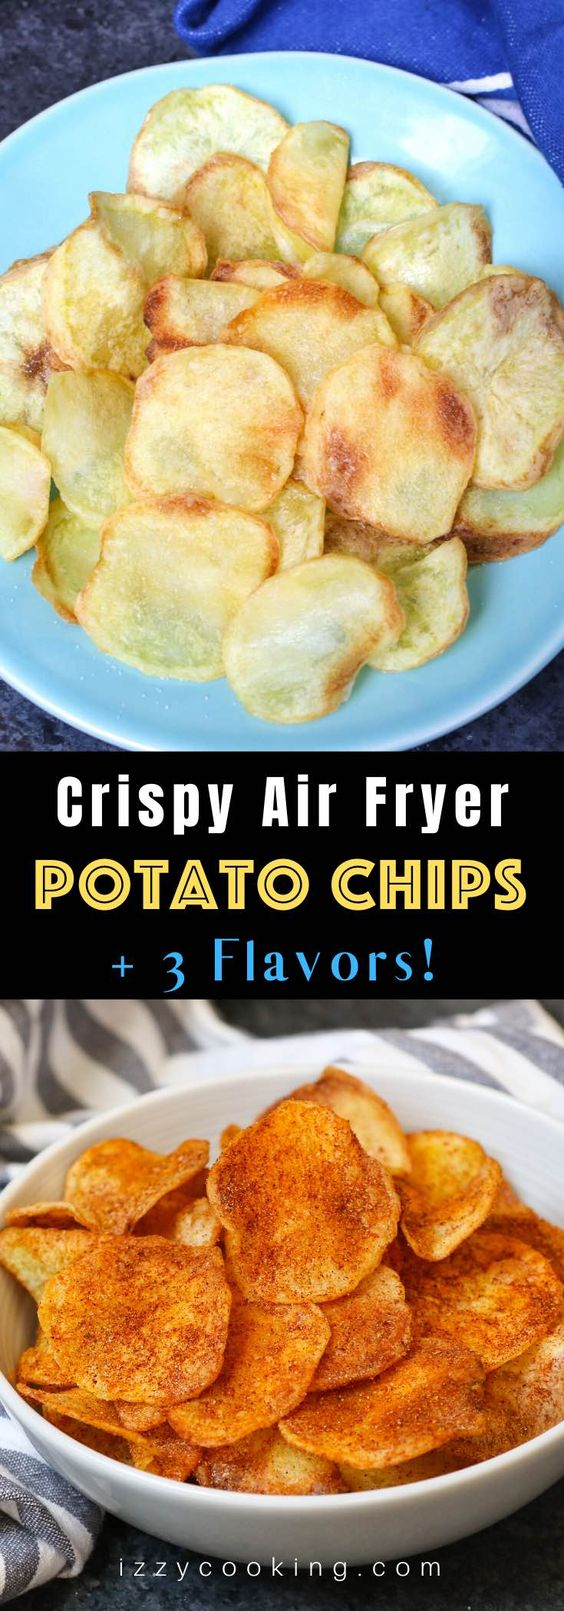 Crispy Air Fryer Potato Chips without Oil